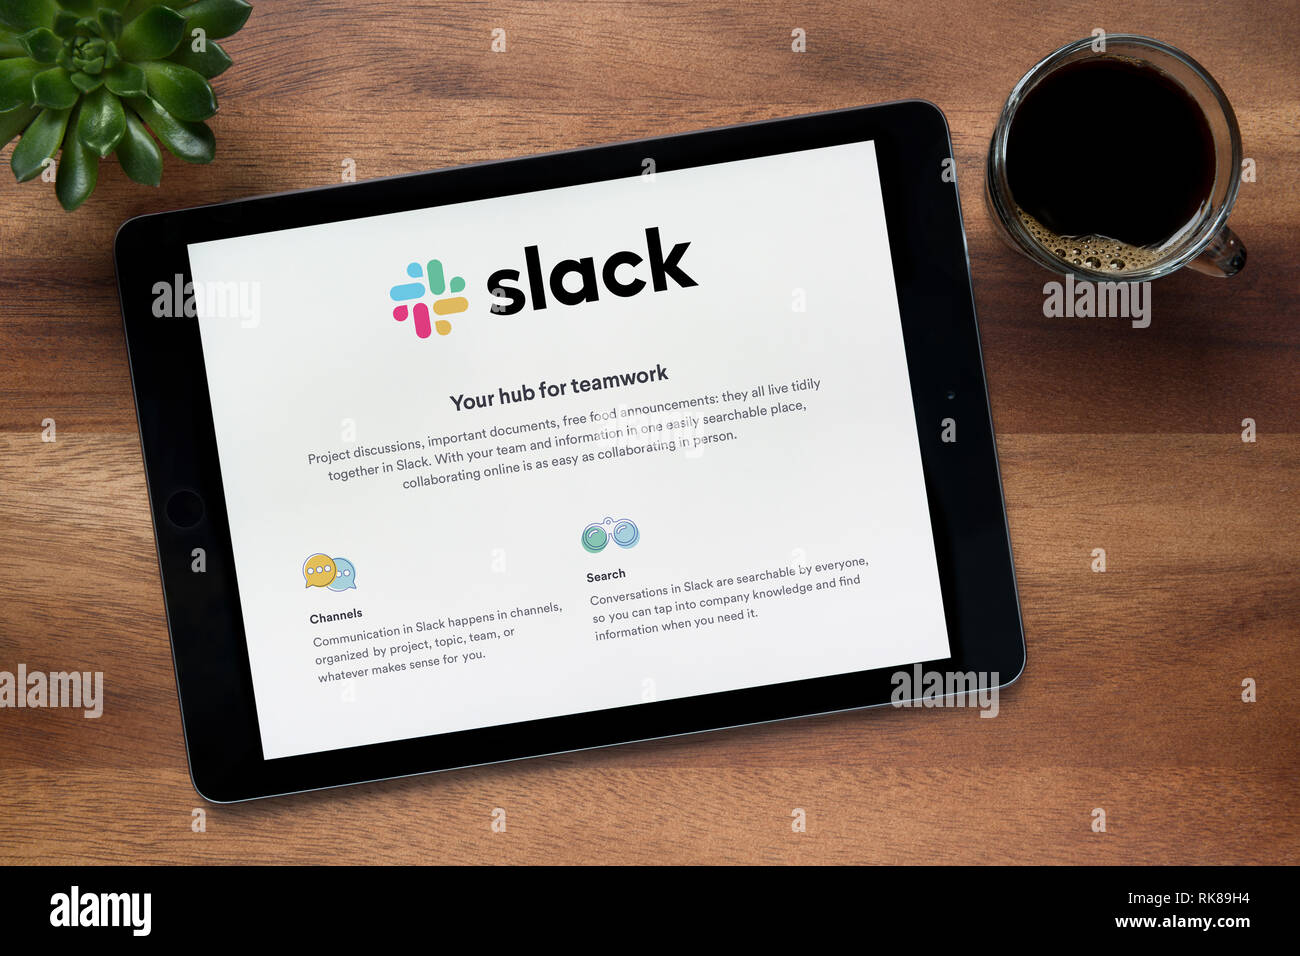 The website of Slack is seen on an iPad tablet, on a wooden table along with an espresso coffee and a house plant (Editorial use only). - Stock Image